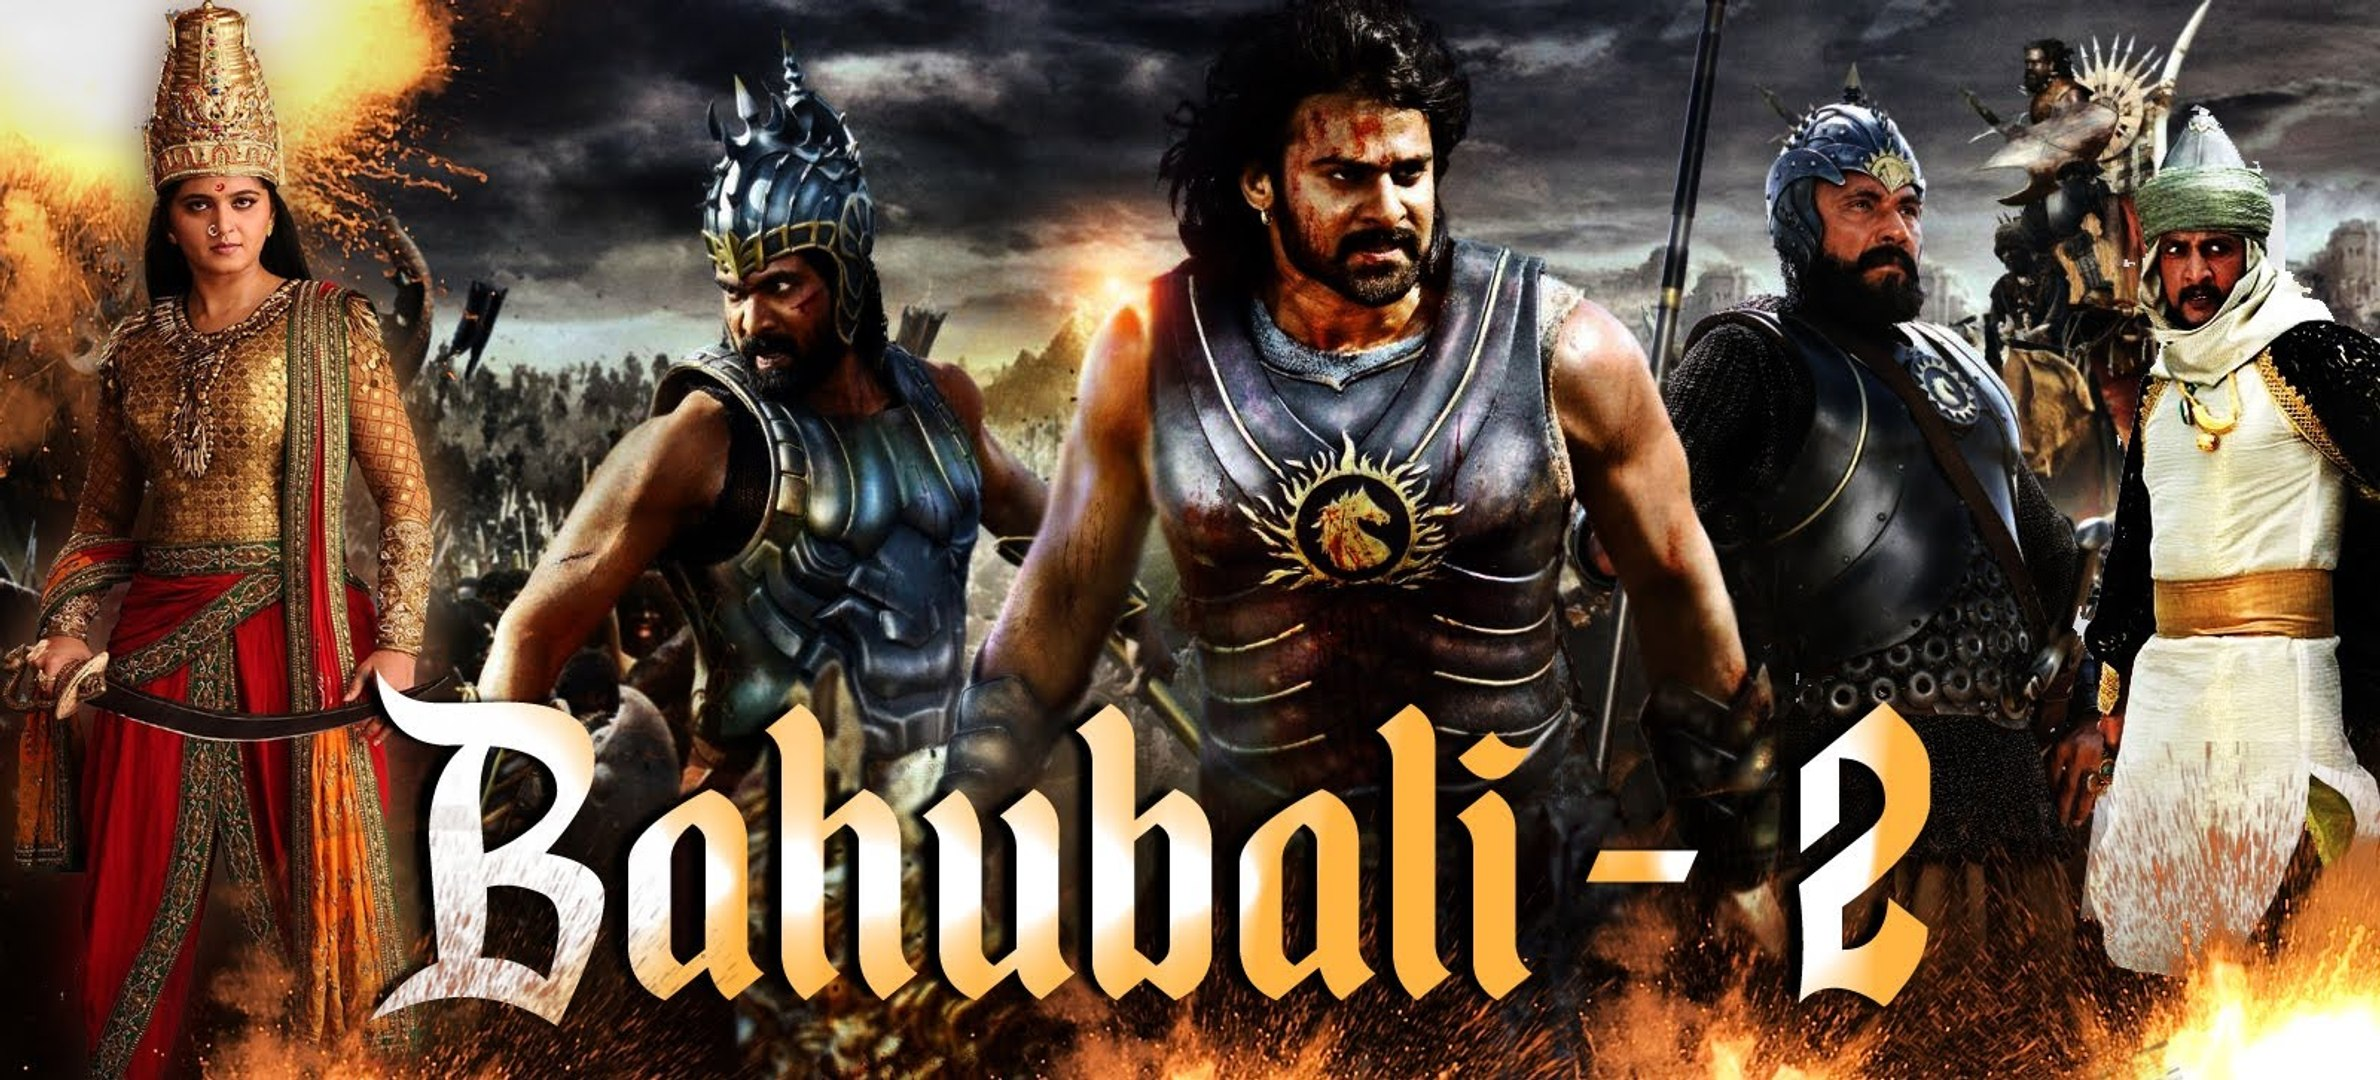 Bahubali 2 The Conclusion 2017 Hindi Video Dailymotion